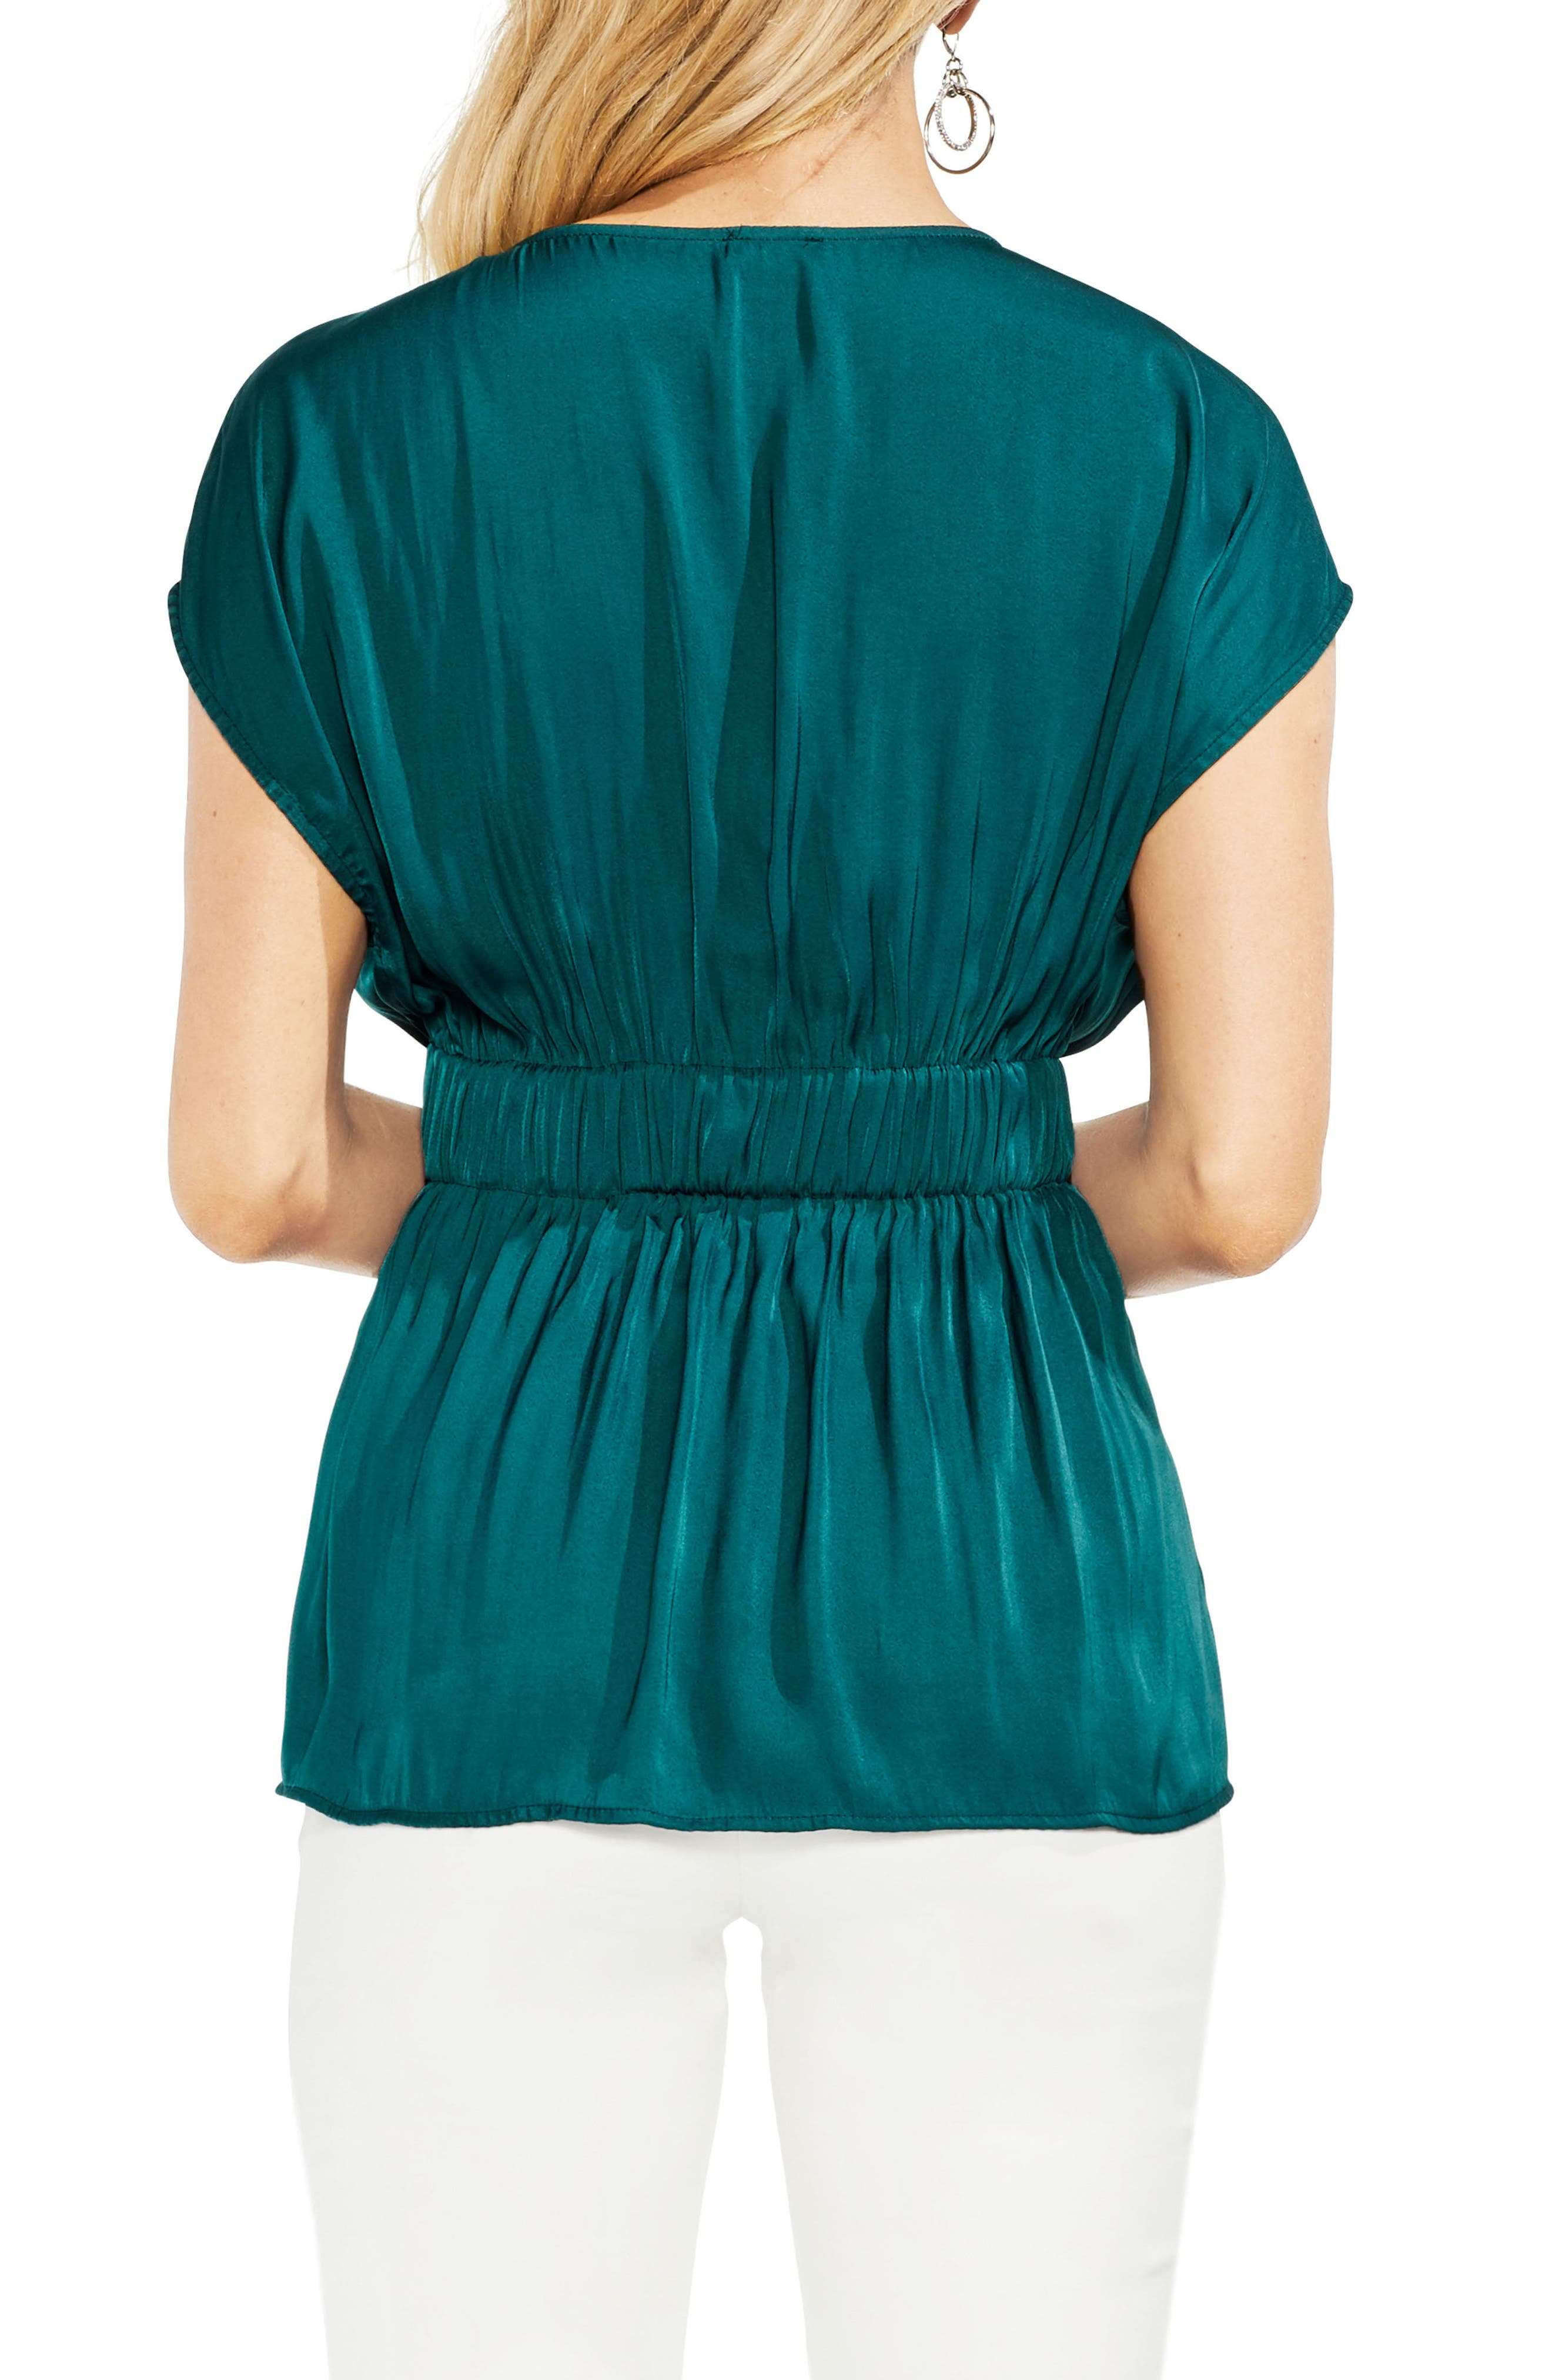 Cinched Waist Top,                             Alternate thumbnail 2, color,                             300